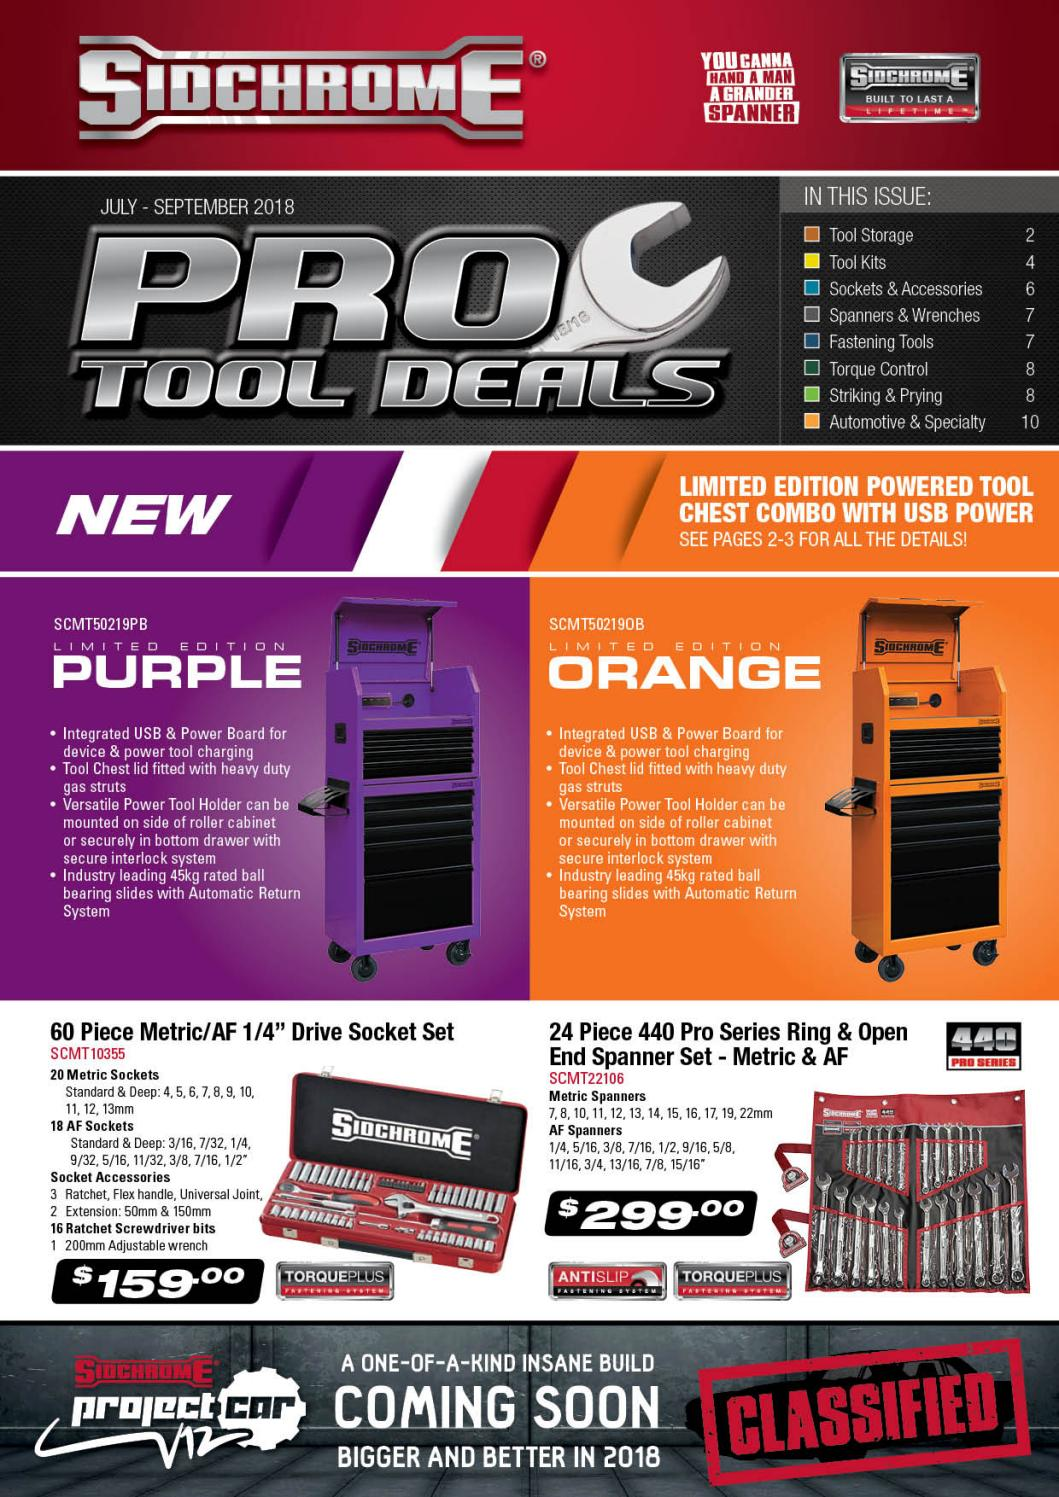 SIDCHROME PRO TOOL DEALS CATALOGUE END SEPTEMBER 18 by